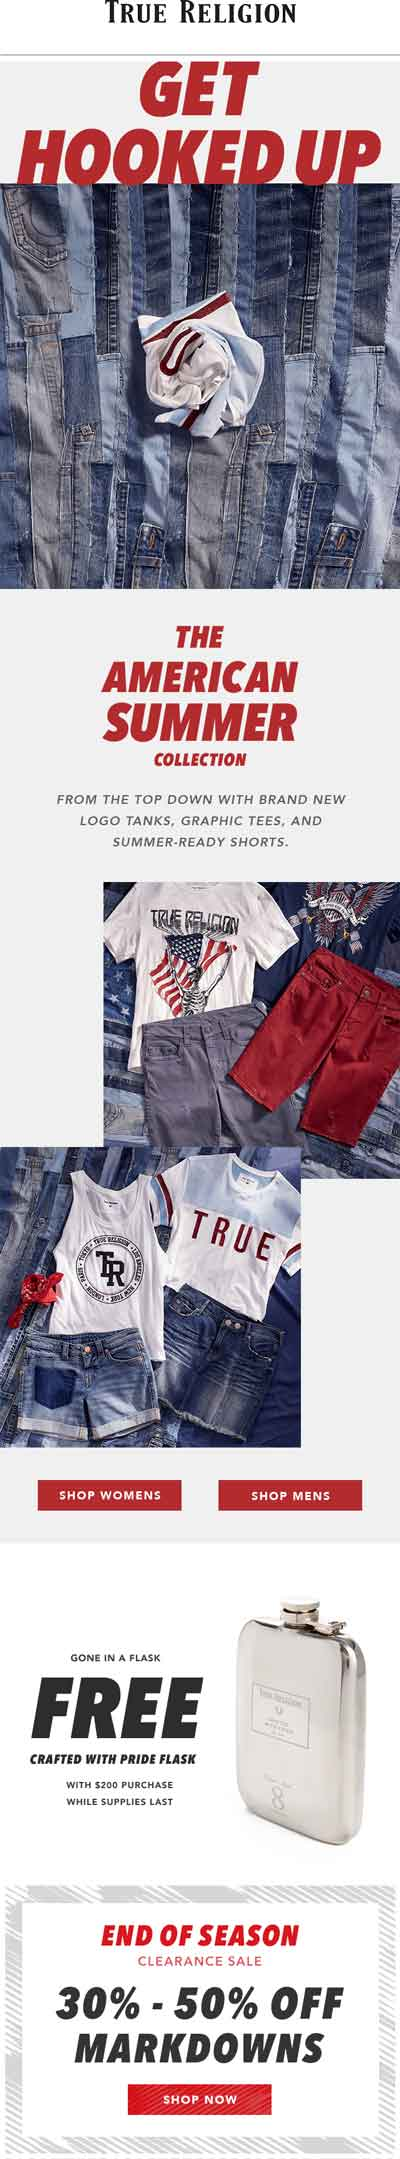 True Religion Coupon October 2018 30-50% off markdowns + free flask at True Religion, ditto online